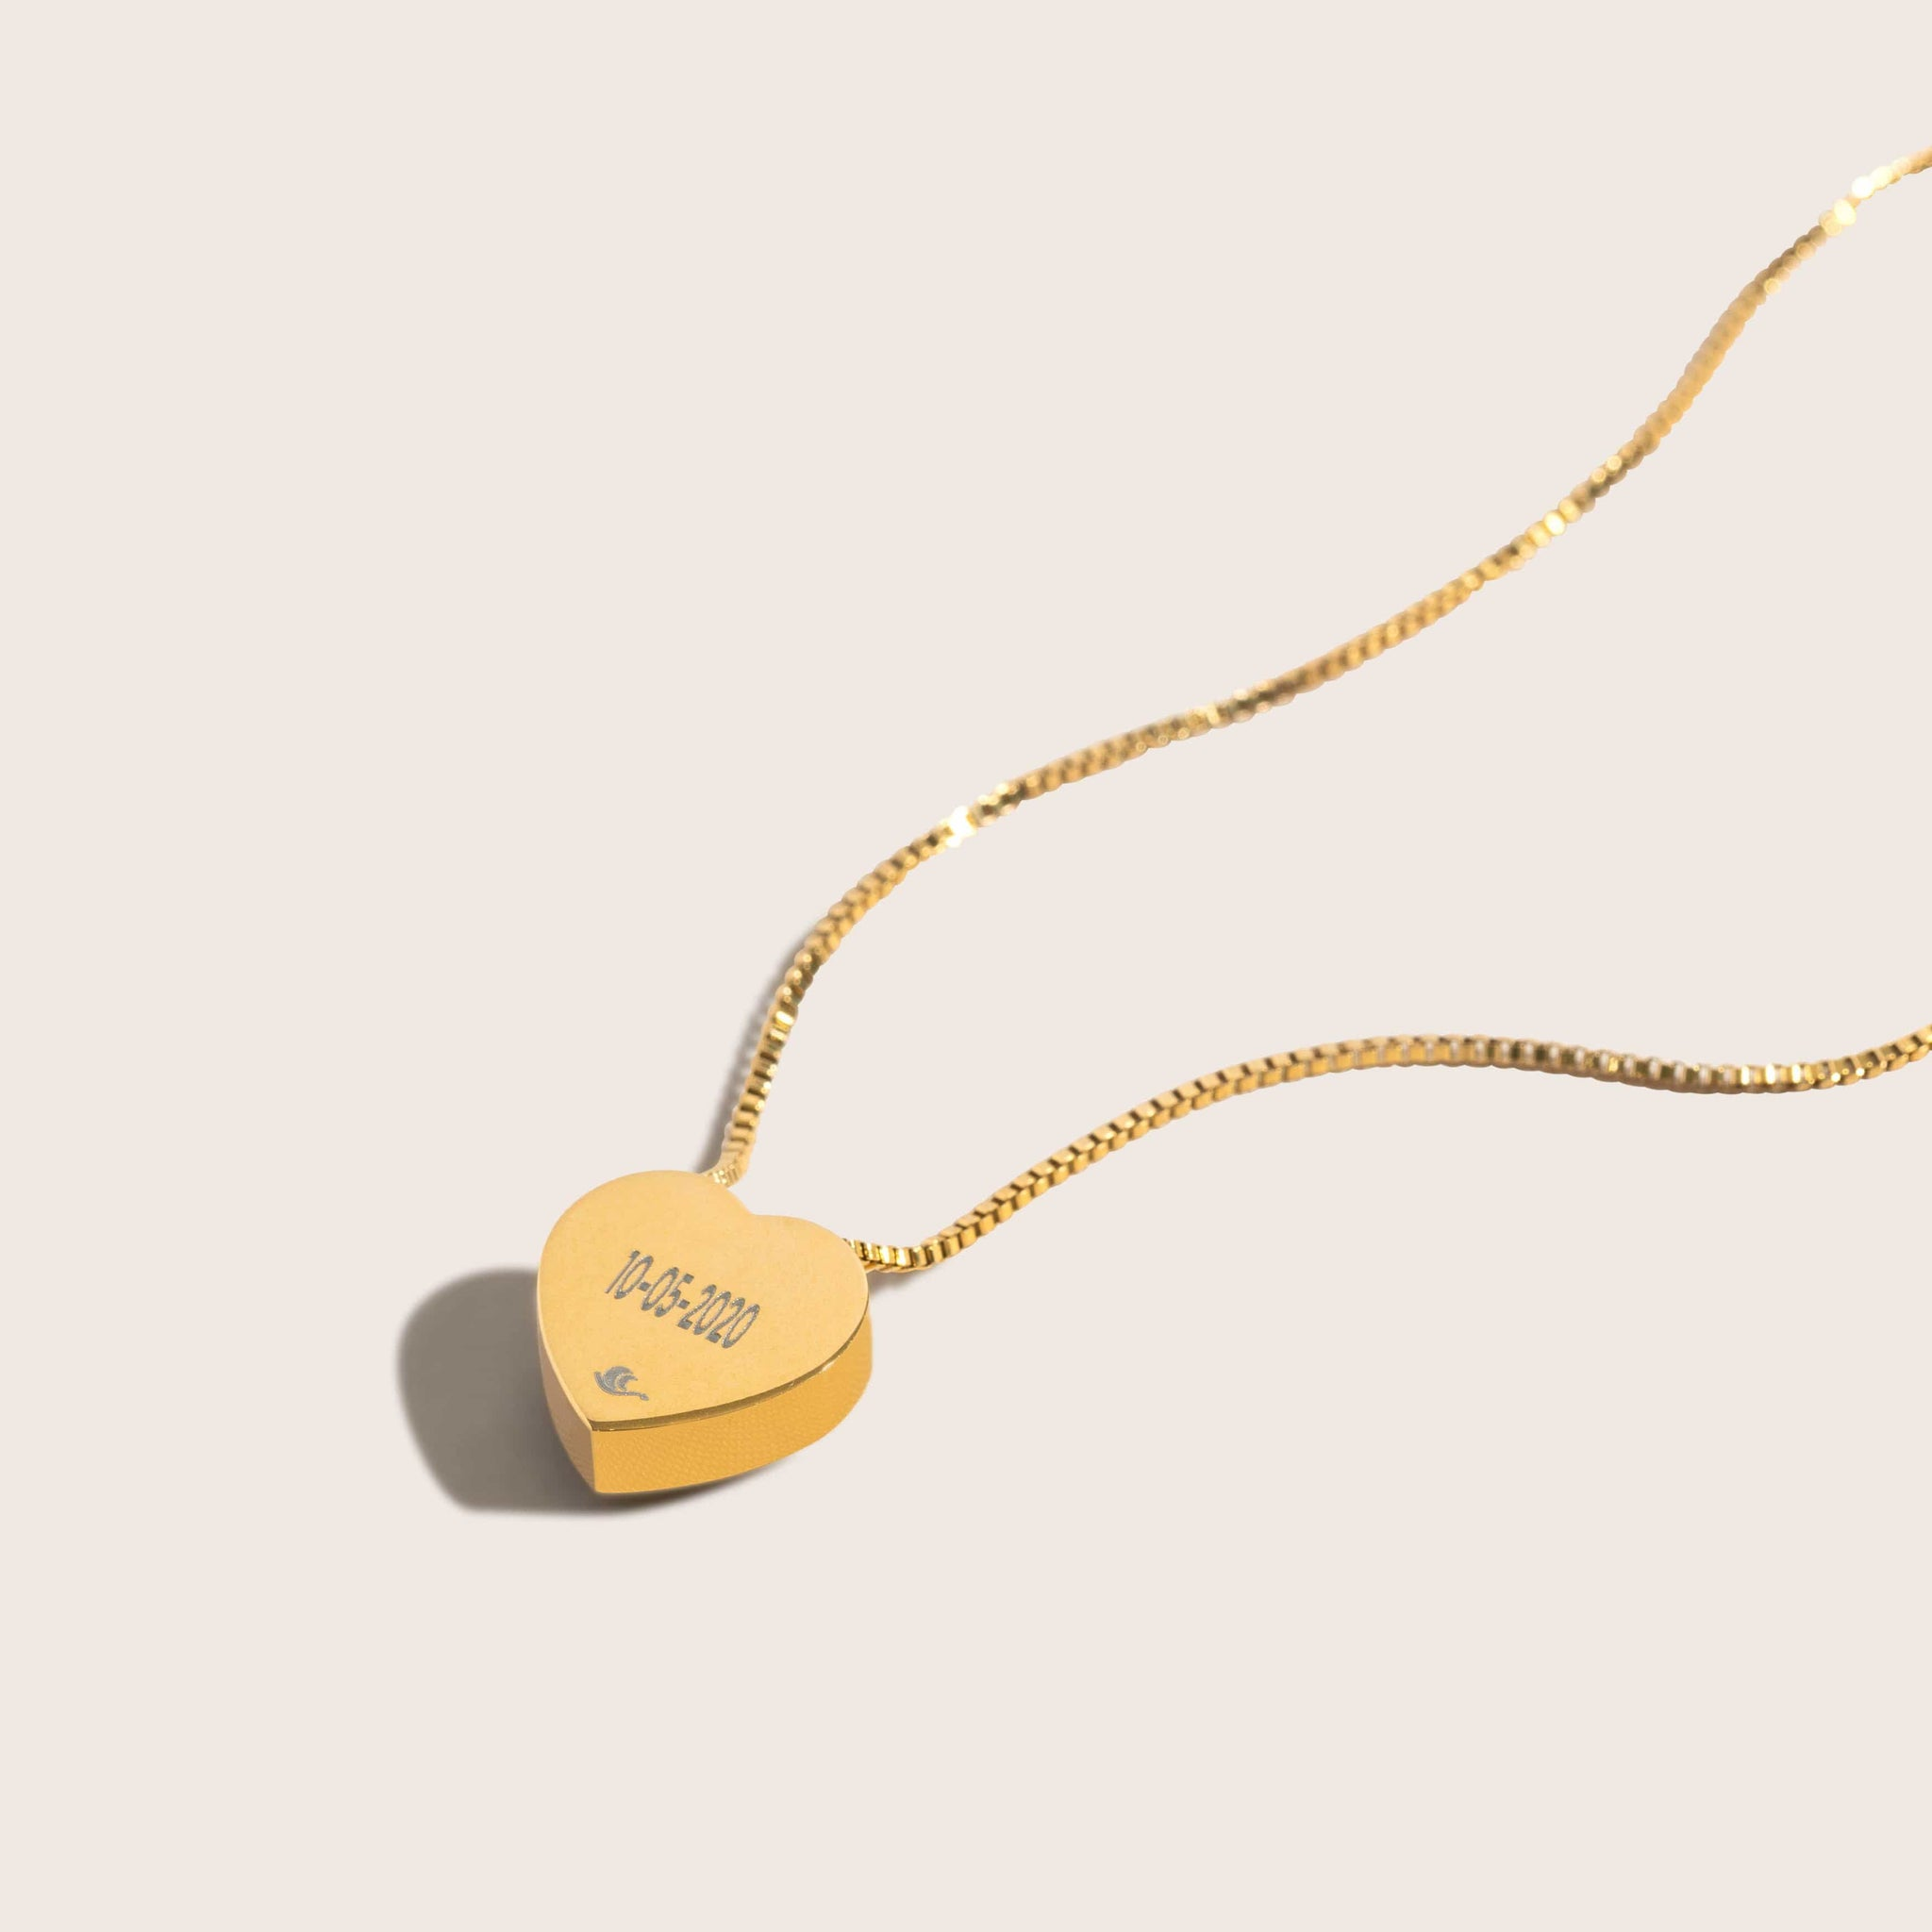 Wholesome Heart Necklace in Gold